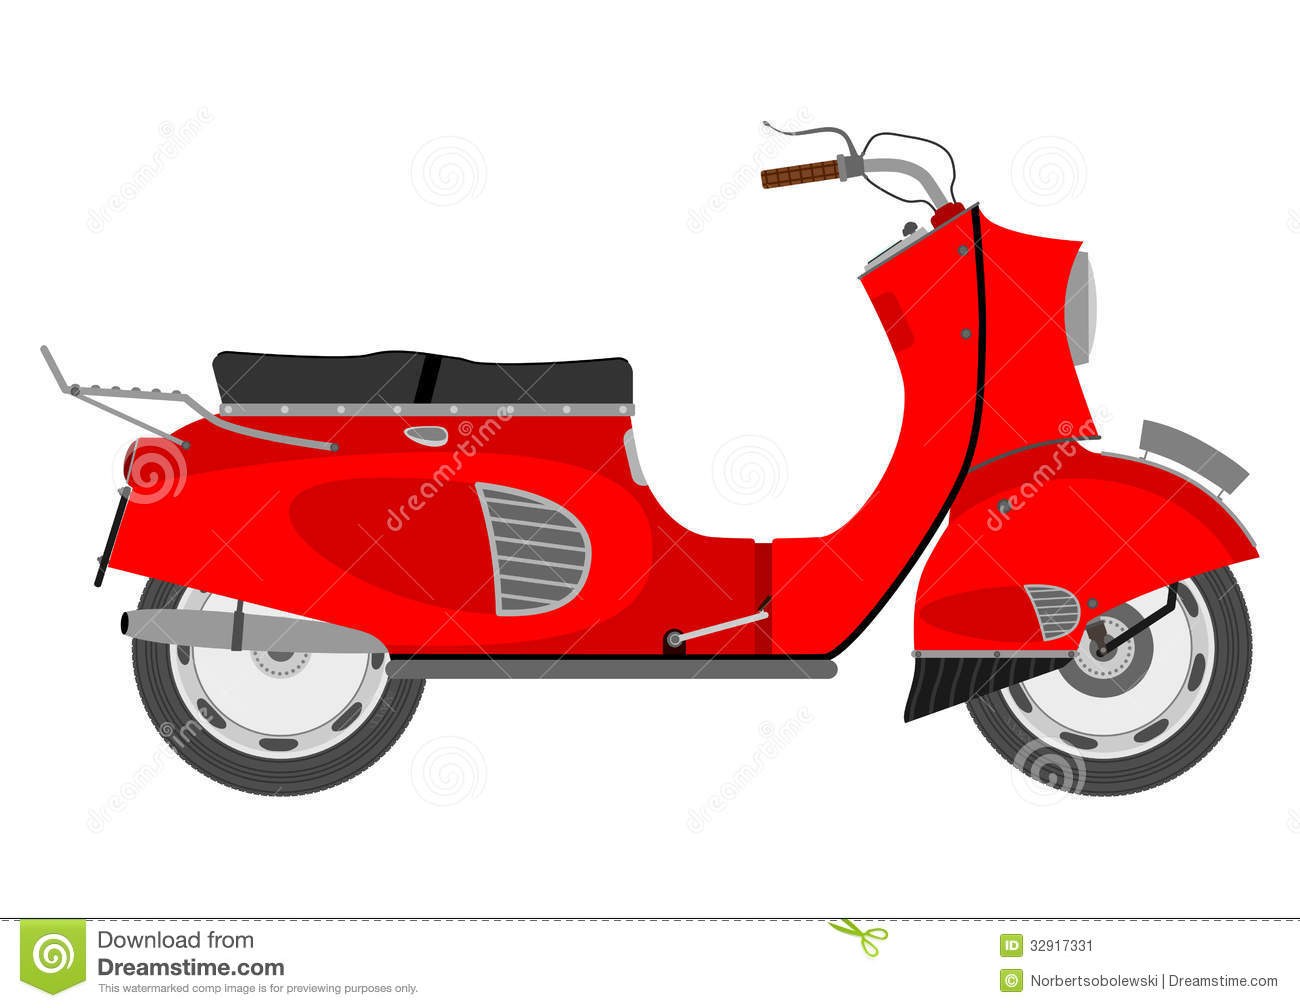 Vintage Scooter Stock Image - Image: 32917331